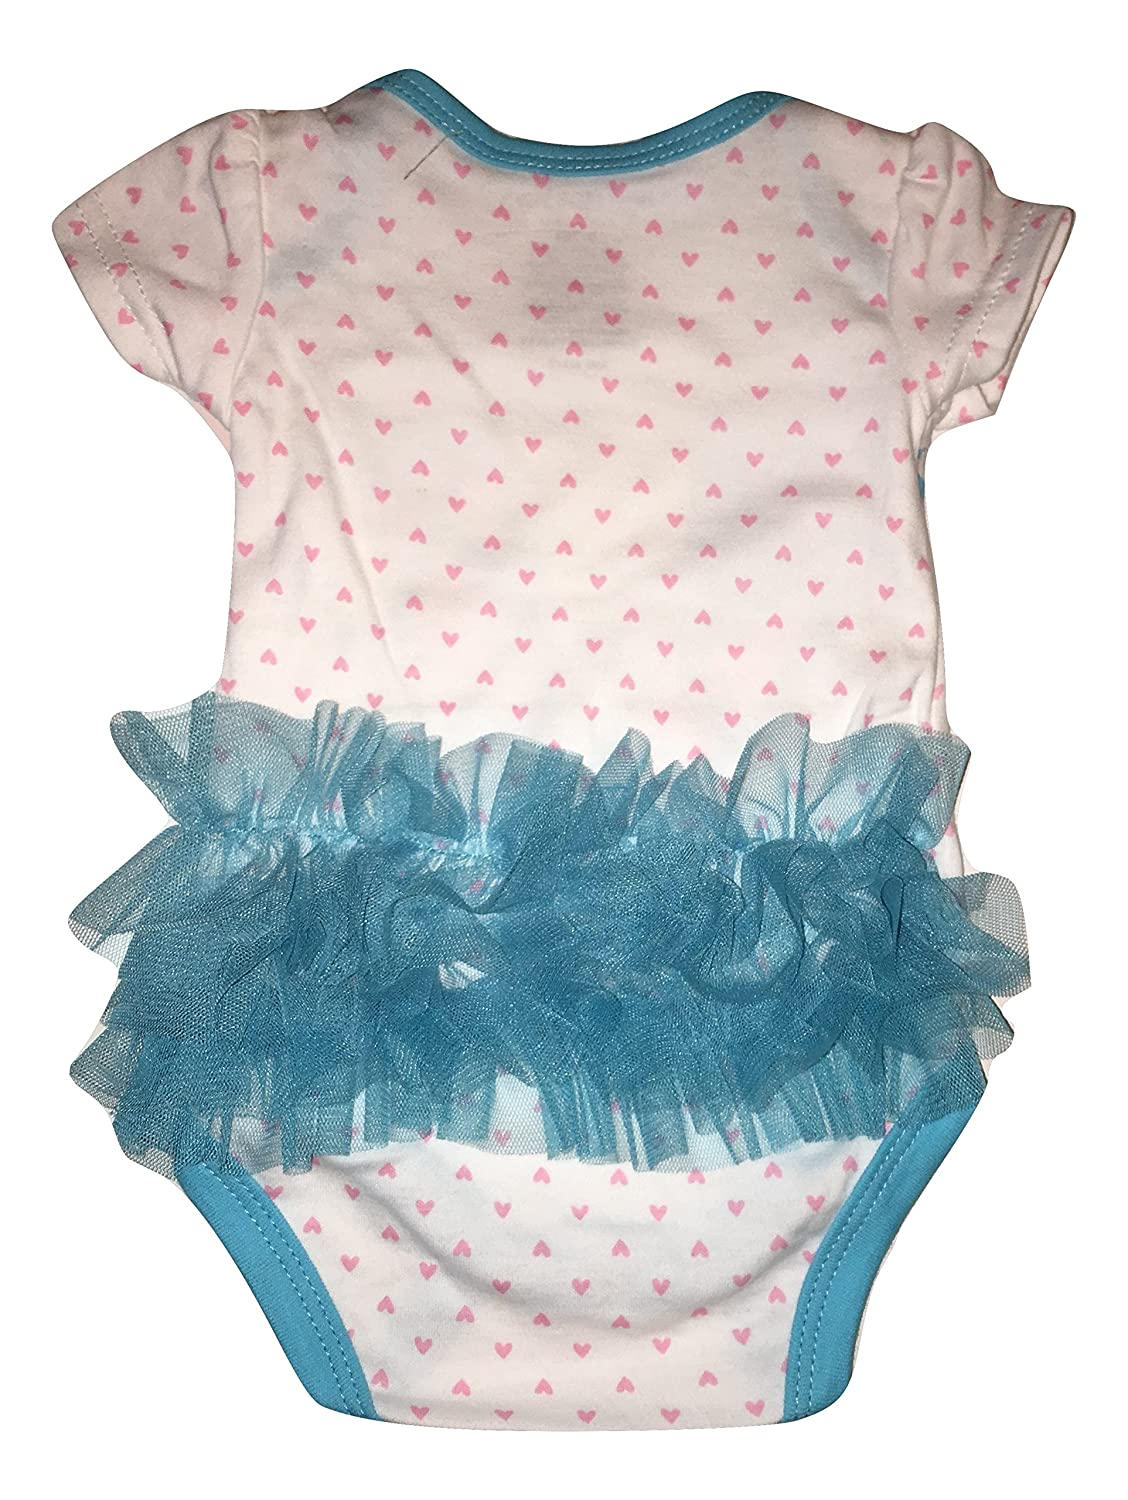 d2a4c8c9c Amazon.com: Buster Brown Baby Girls Ballerina 3 Piece set - Creeper, Hat  and Socks: Clothing